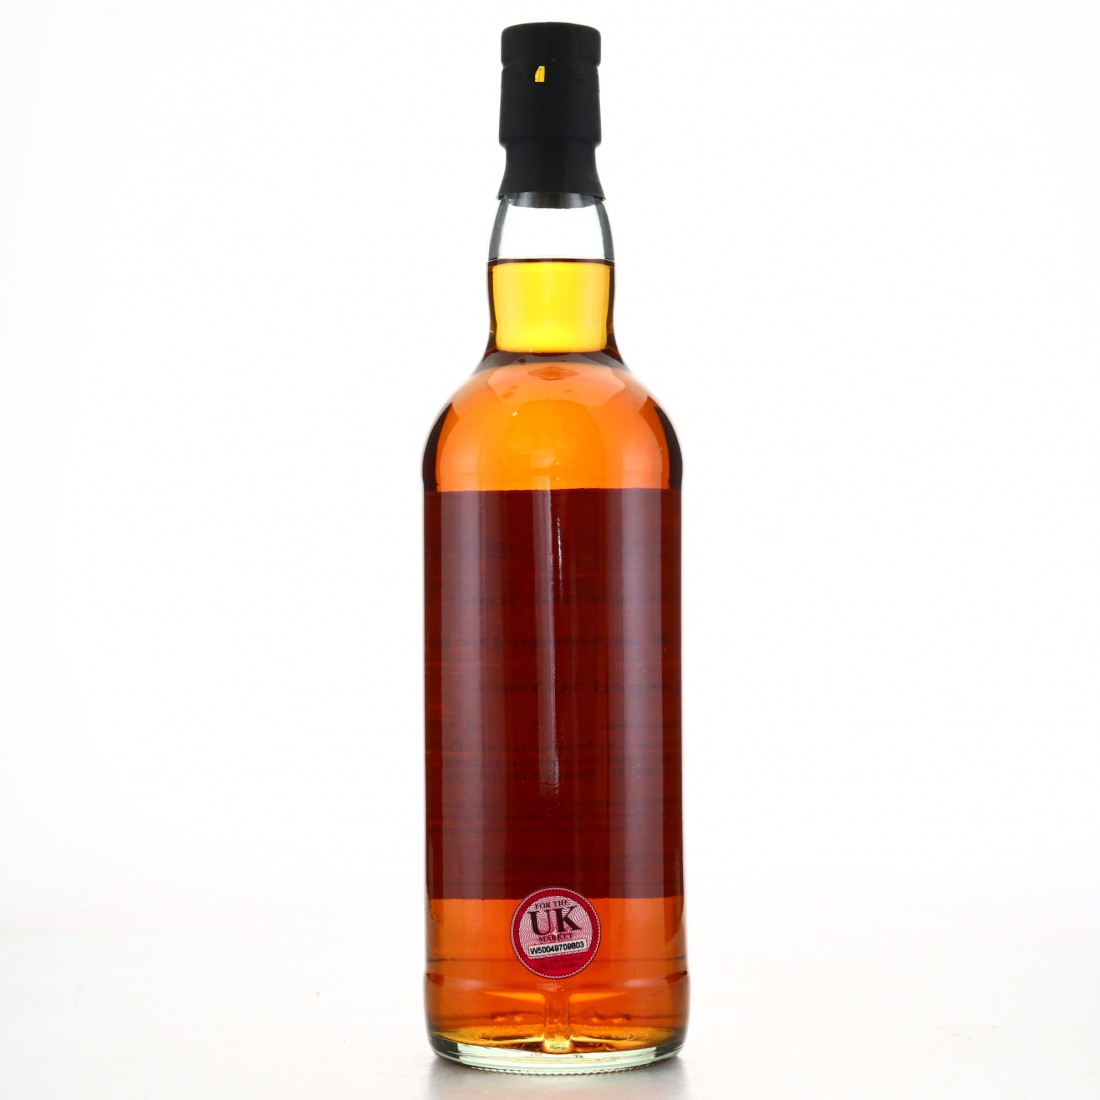 Ardmore 2009 Whisky Broker 10 Year Old